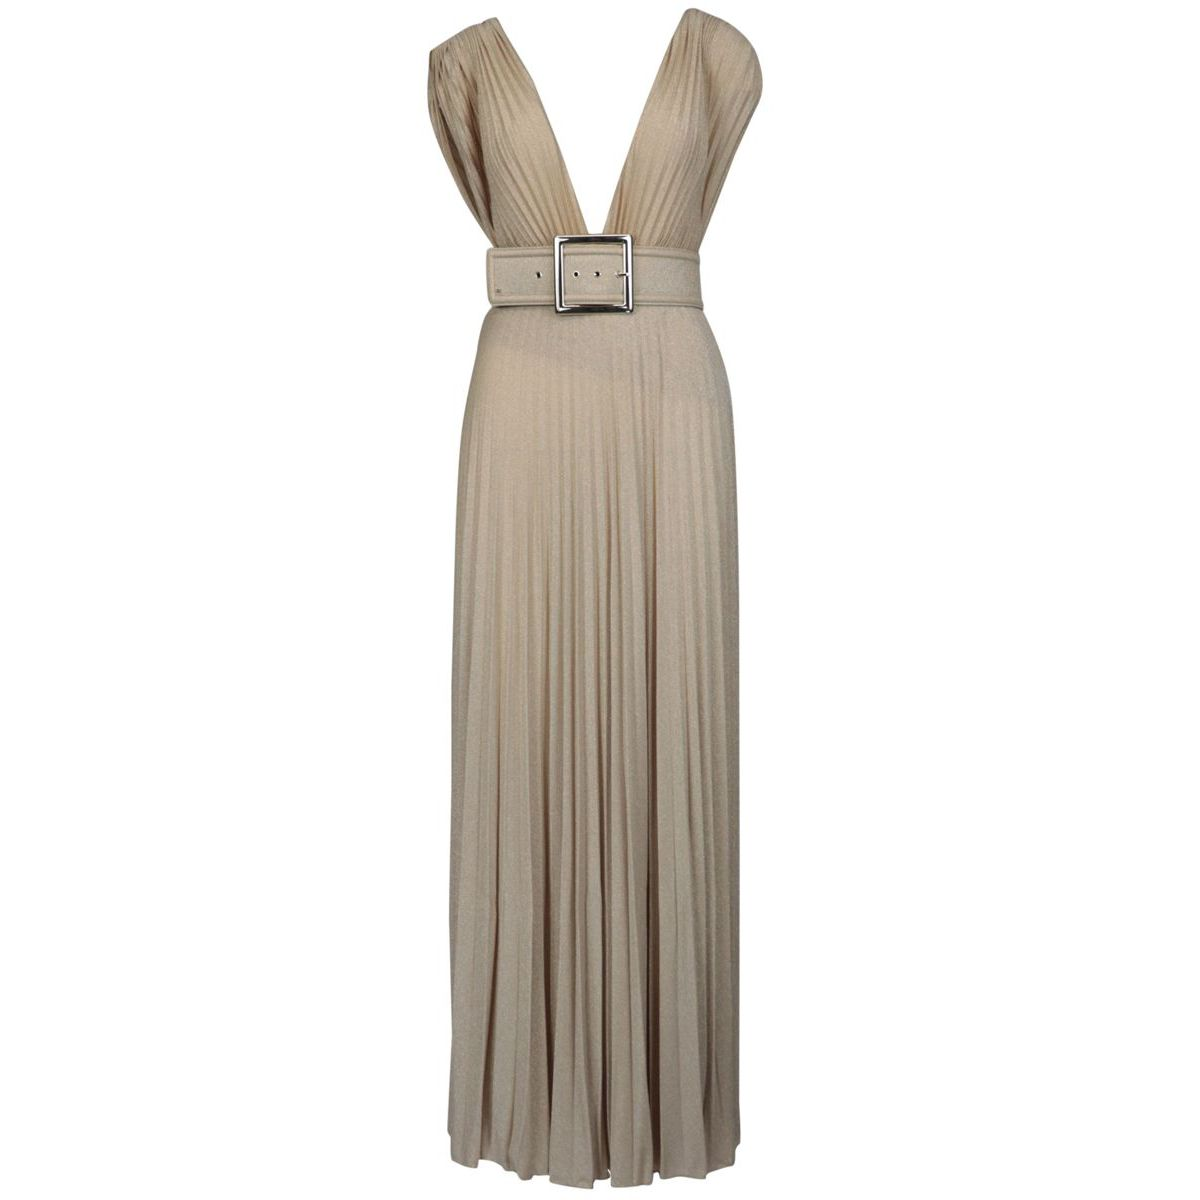 Sleeveless lamè jersey dress with V-neck and belt Gold Elisabetta Franchi